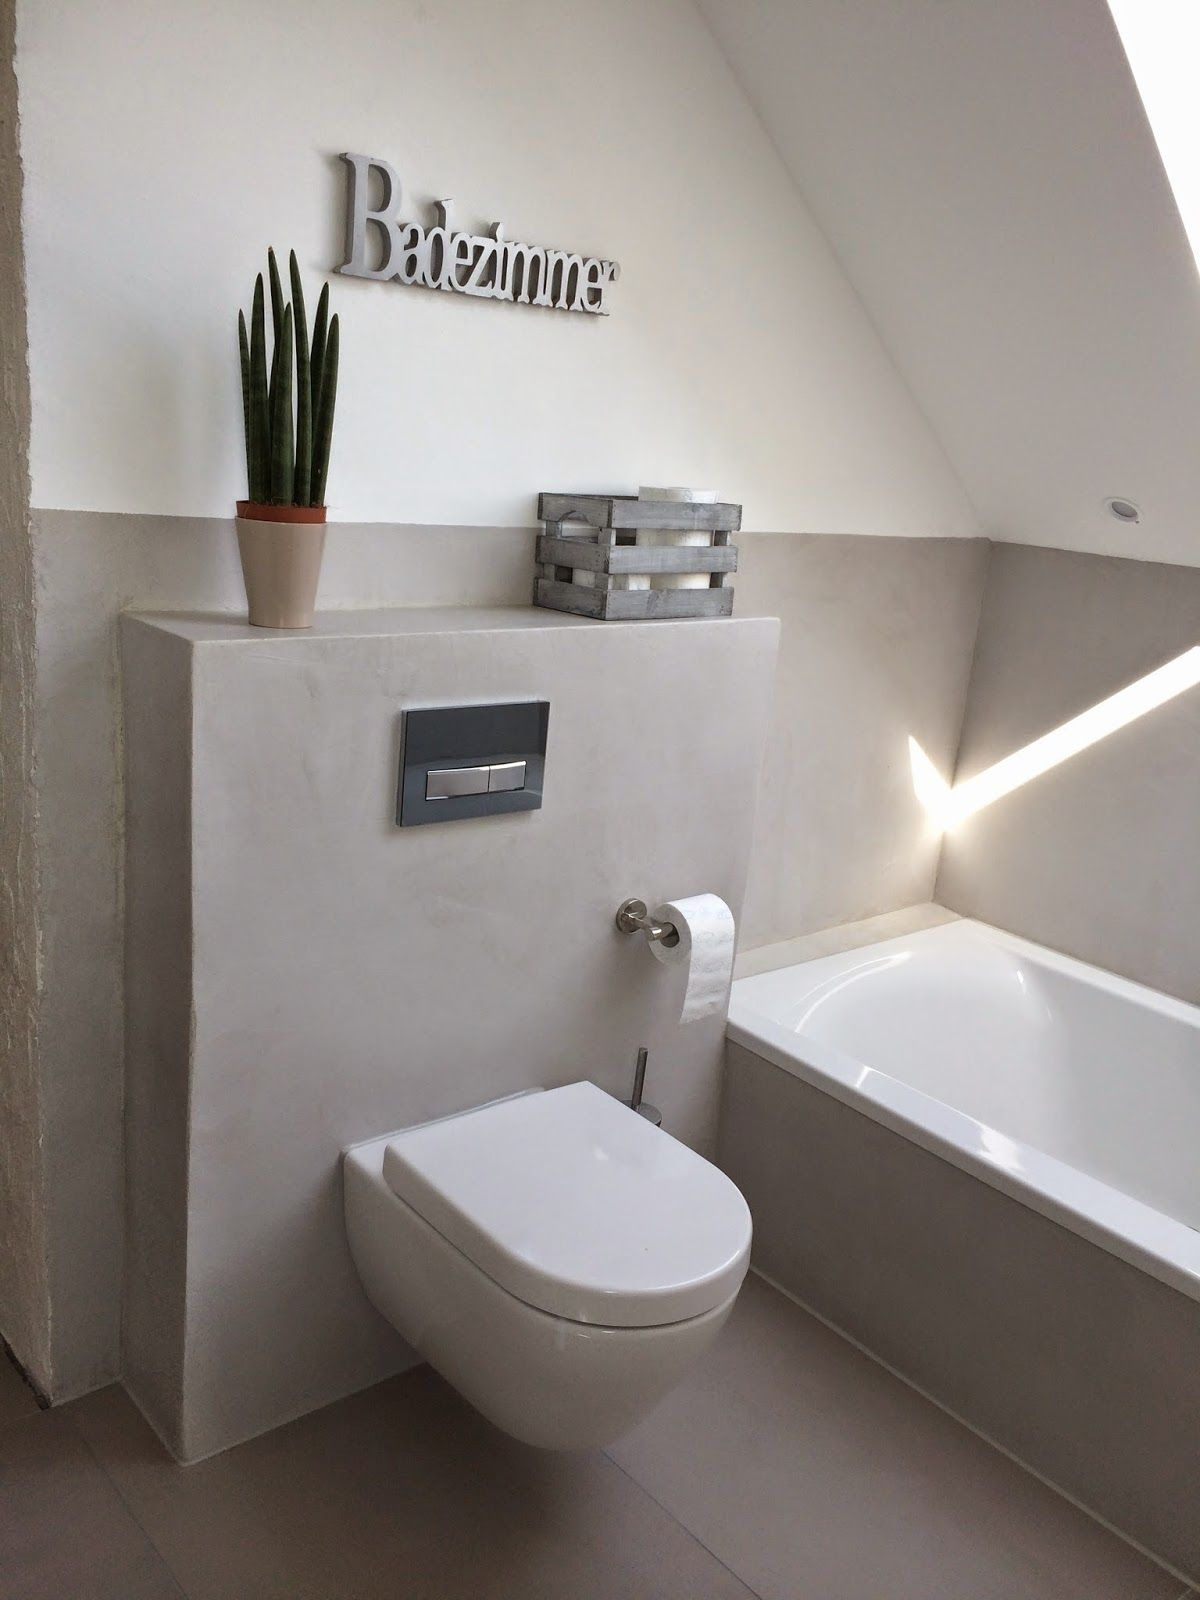 Deko Für Badezimmer Wand Wand Wohndesign Beton Cire September 2014 Bathrooms